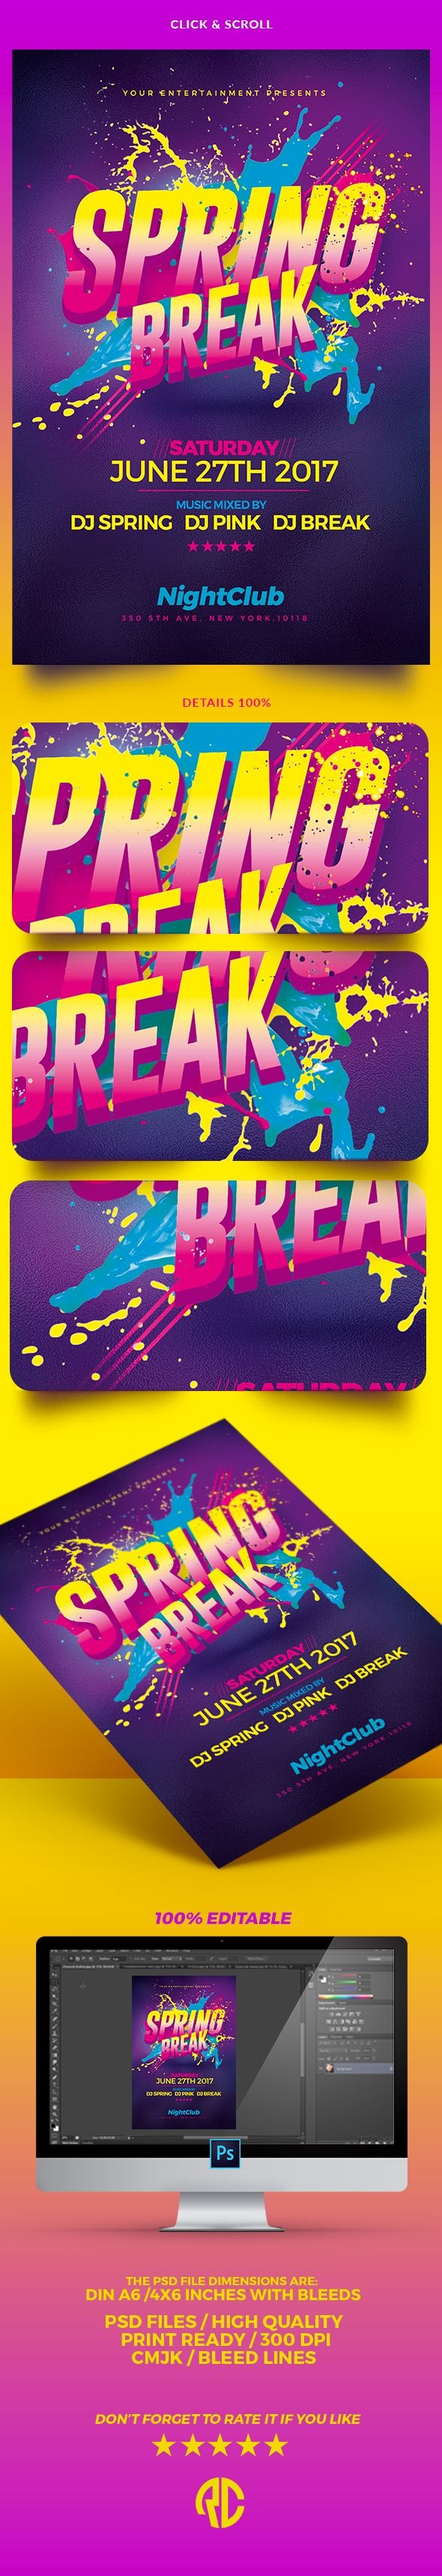 New ! Spring Break Party | Flyer Template Exclusive Template, Very easy to Edit and Creative Design perfect to promote your Spring Party !